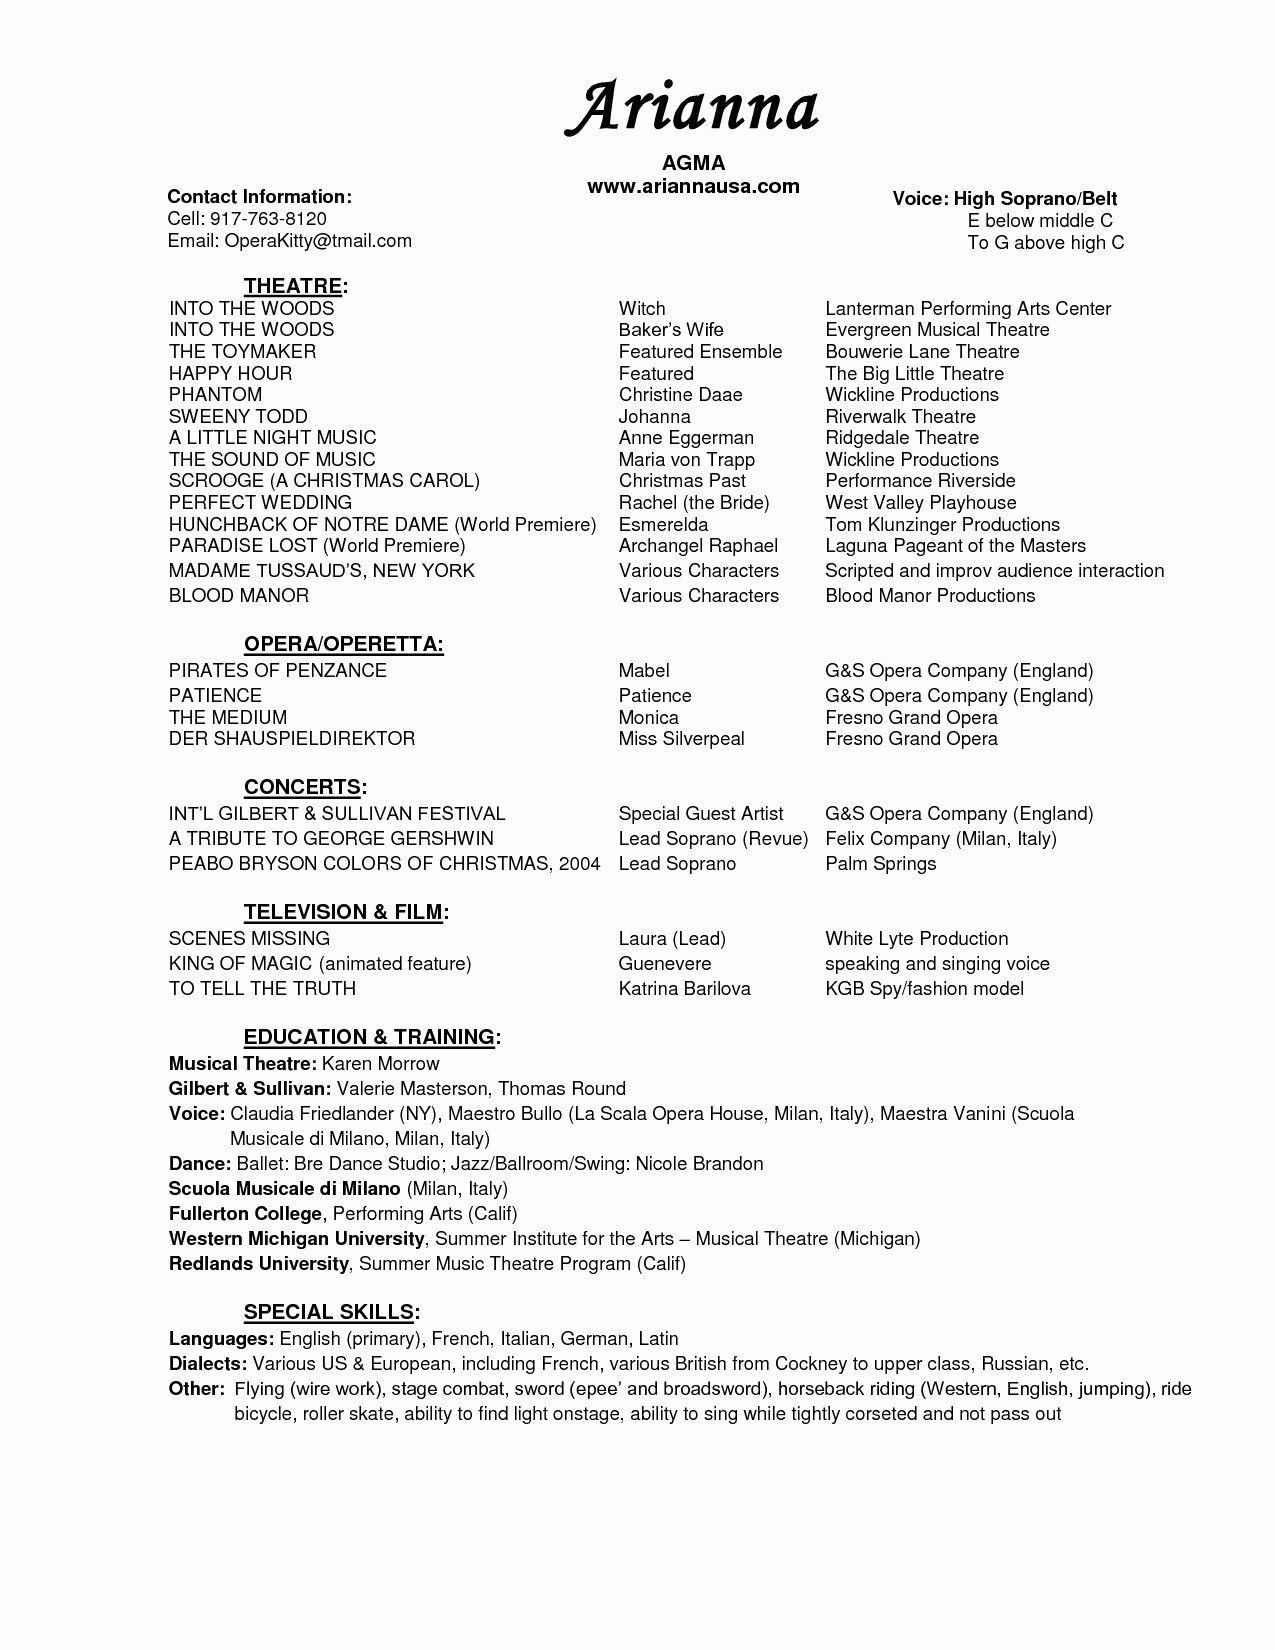 opera resume template example-Artistic Resume Template Save Musicians Resume Template Save Musical Theatre Resume Template 10-n